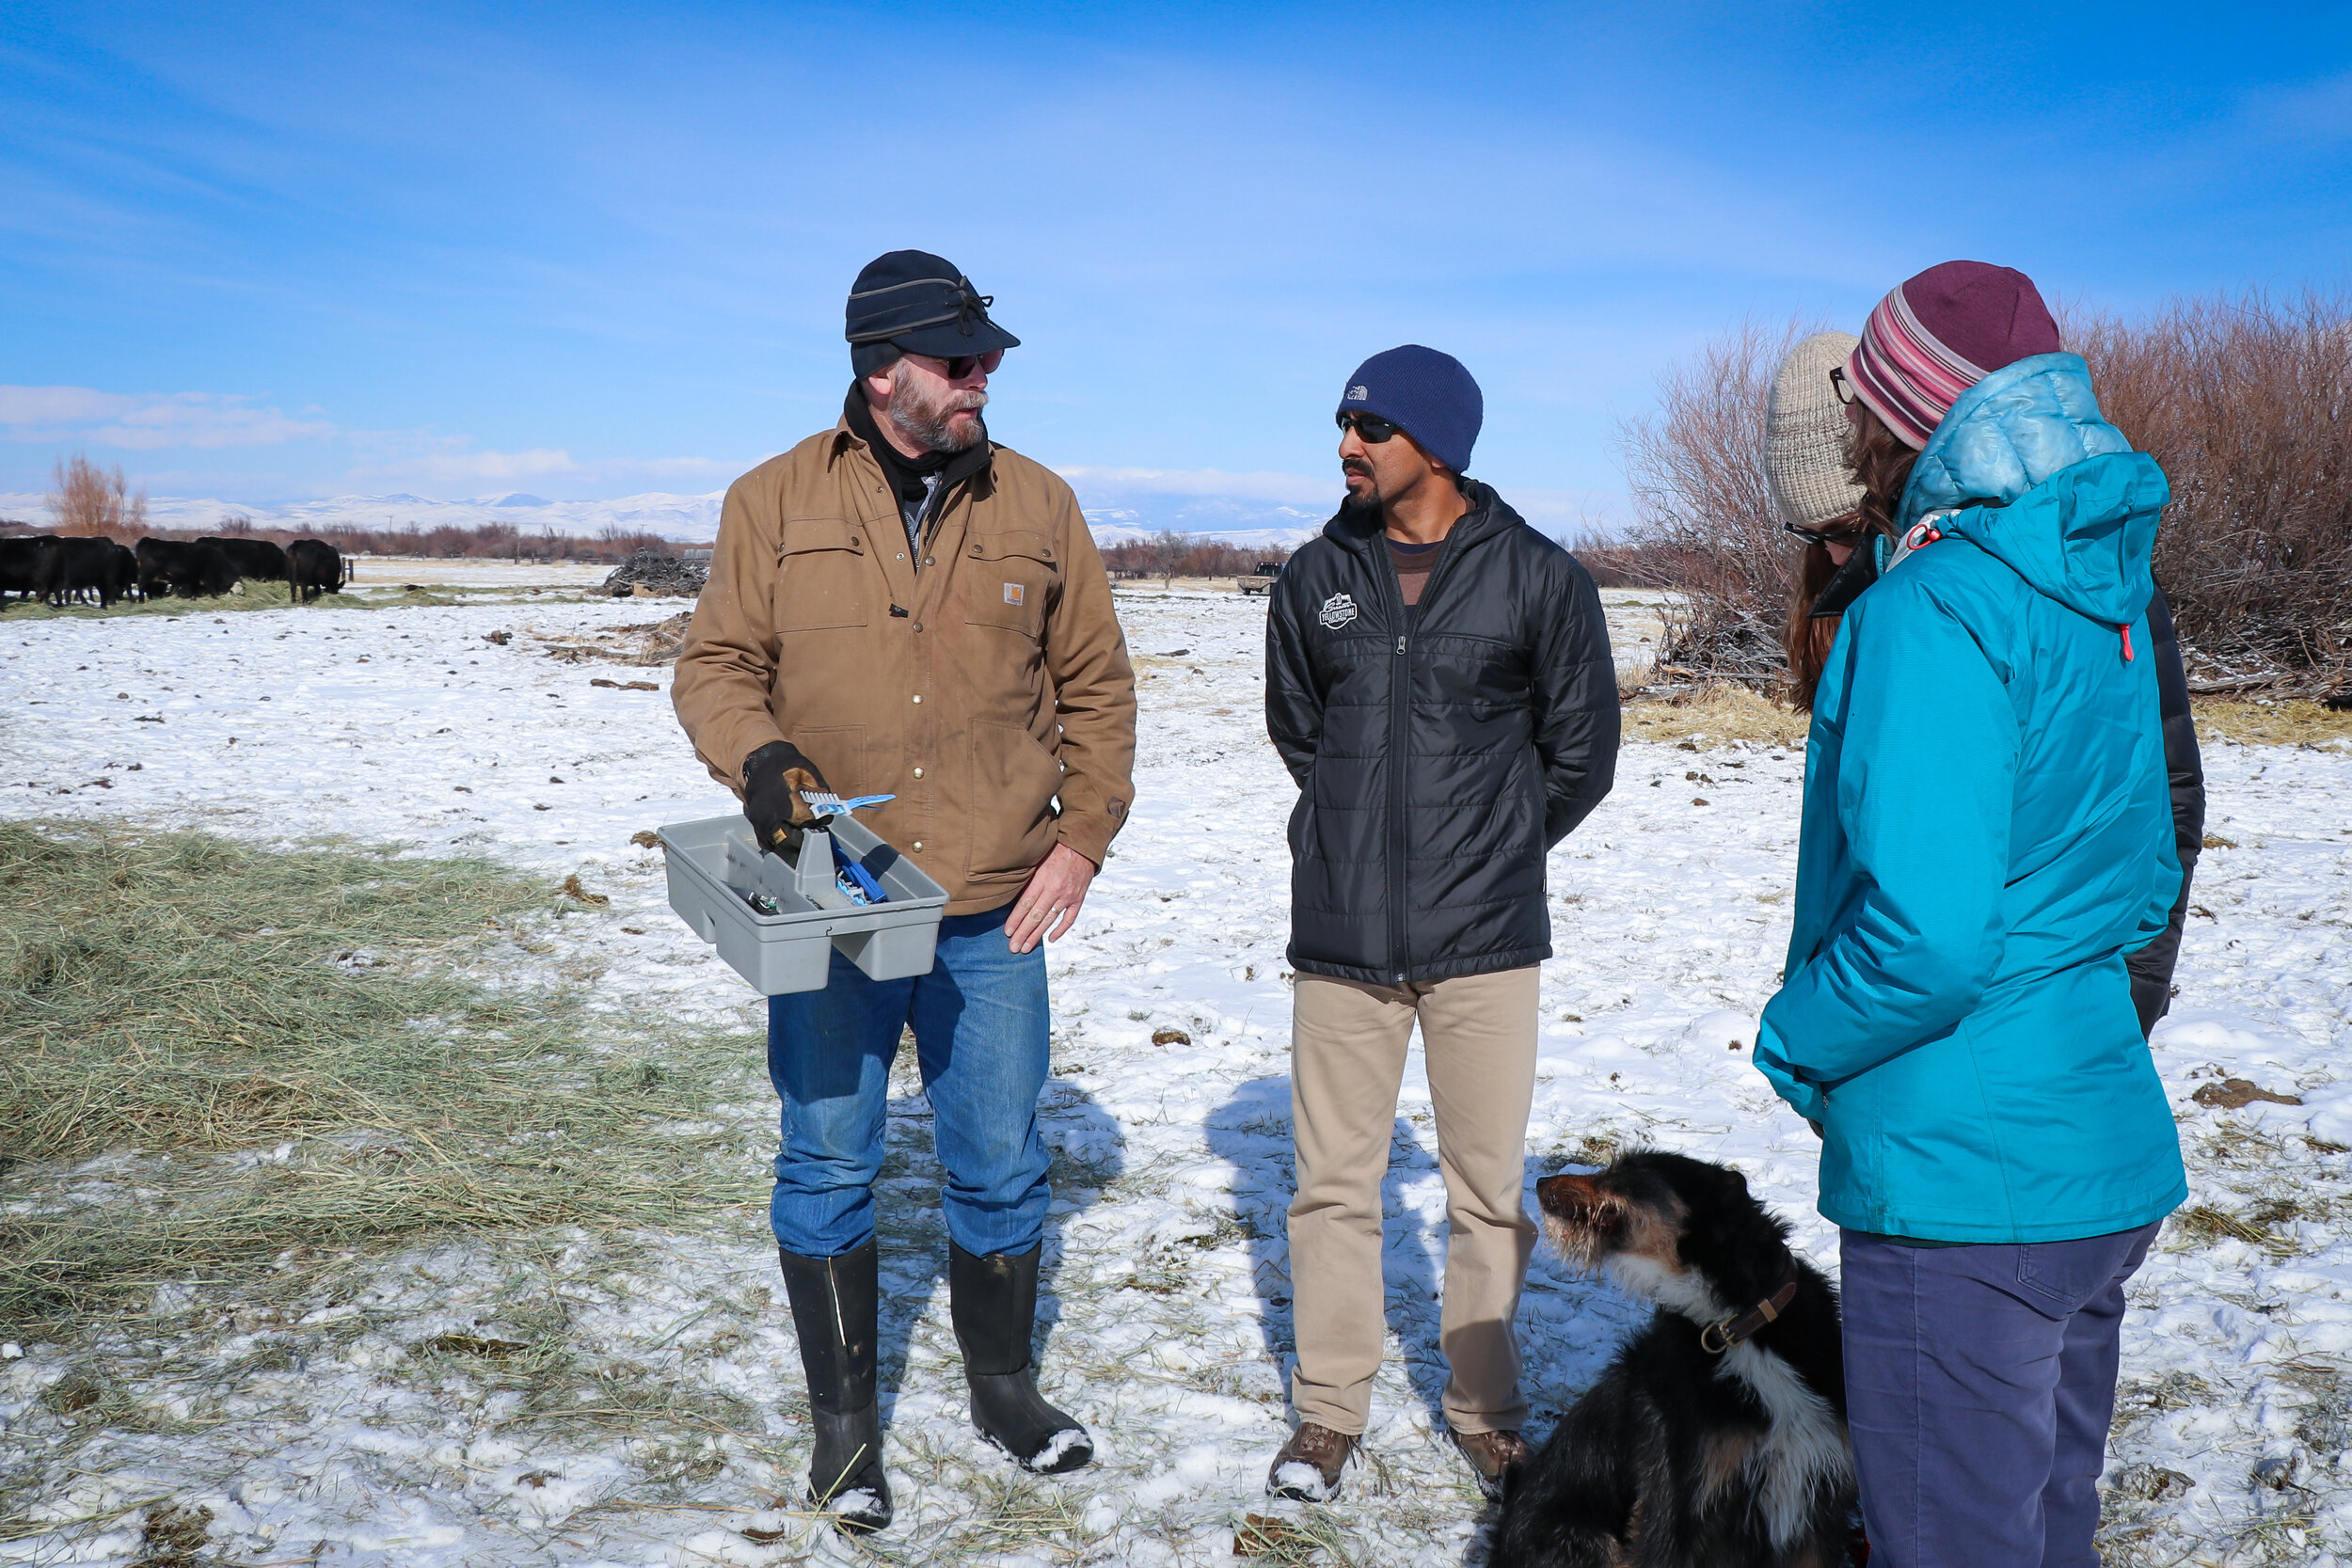 GYC's Director of Conservation Siva Sundaresan, Montana Conservation Coordinator Darcie Warden, and Wildlife Program Associate Brooke Shifrin visit with rancher Neil Barnosky to learn about his winter operations. (Photo GYC/Emmy Reed.)